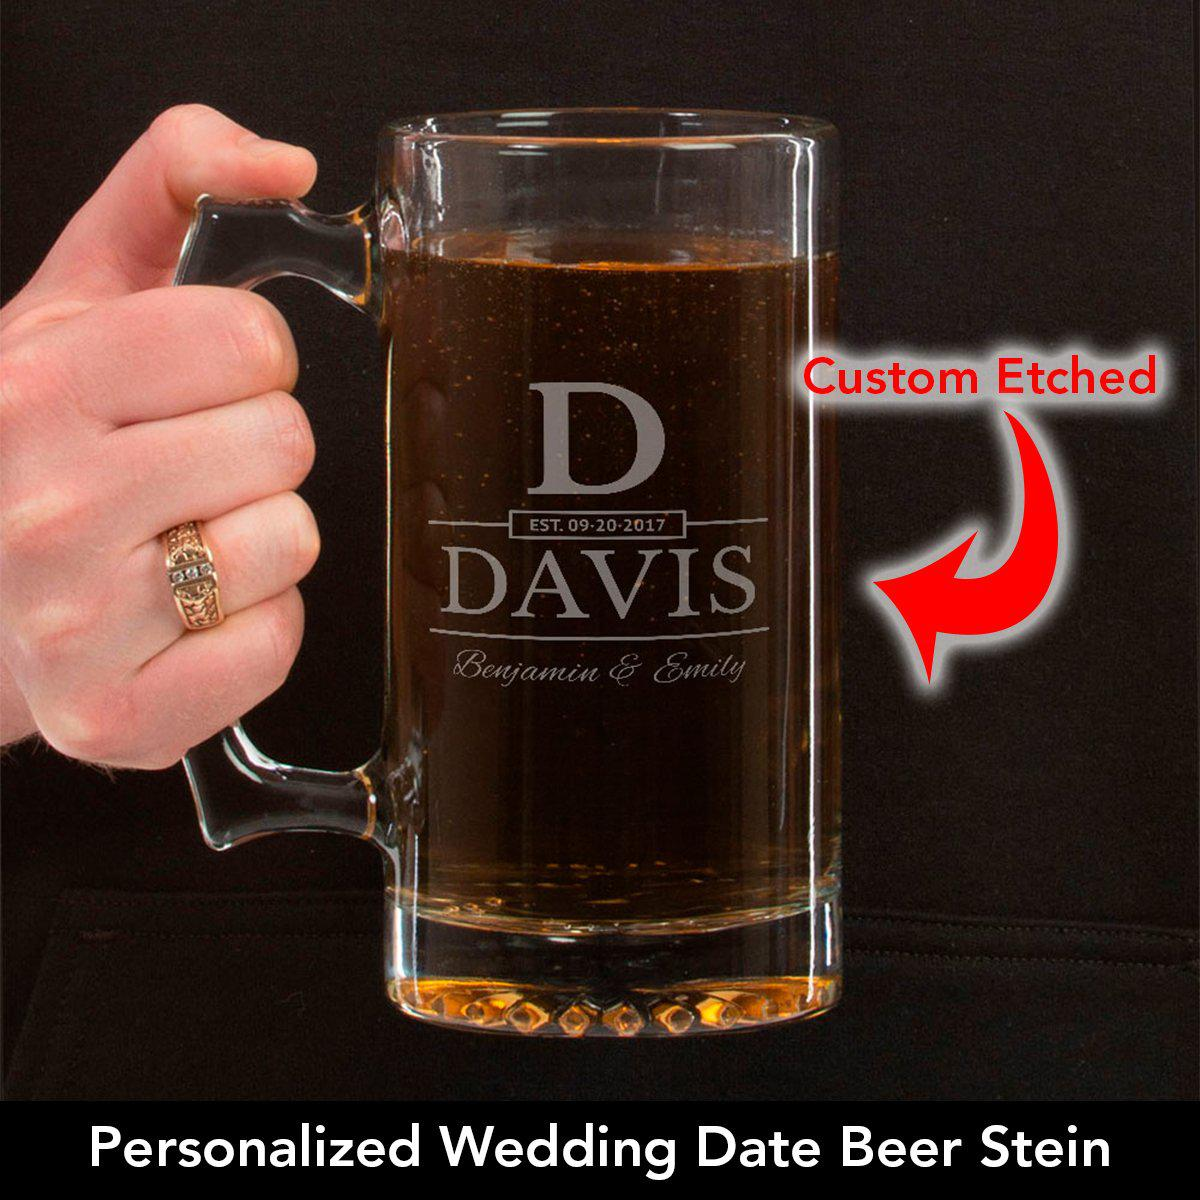 Wedding Date - Personalized Beer Mug